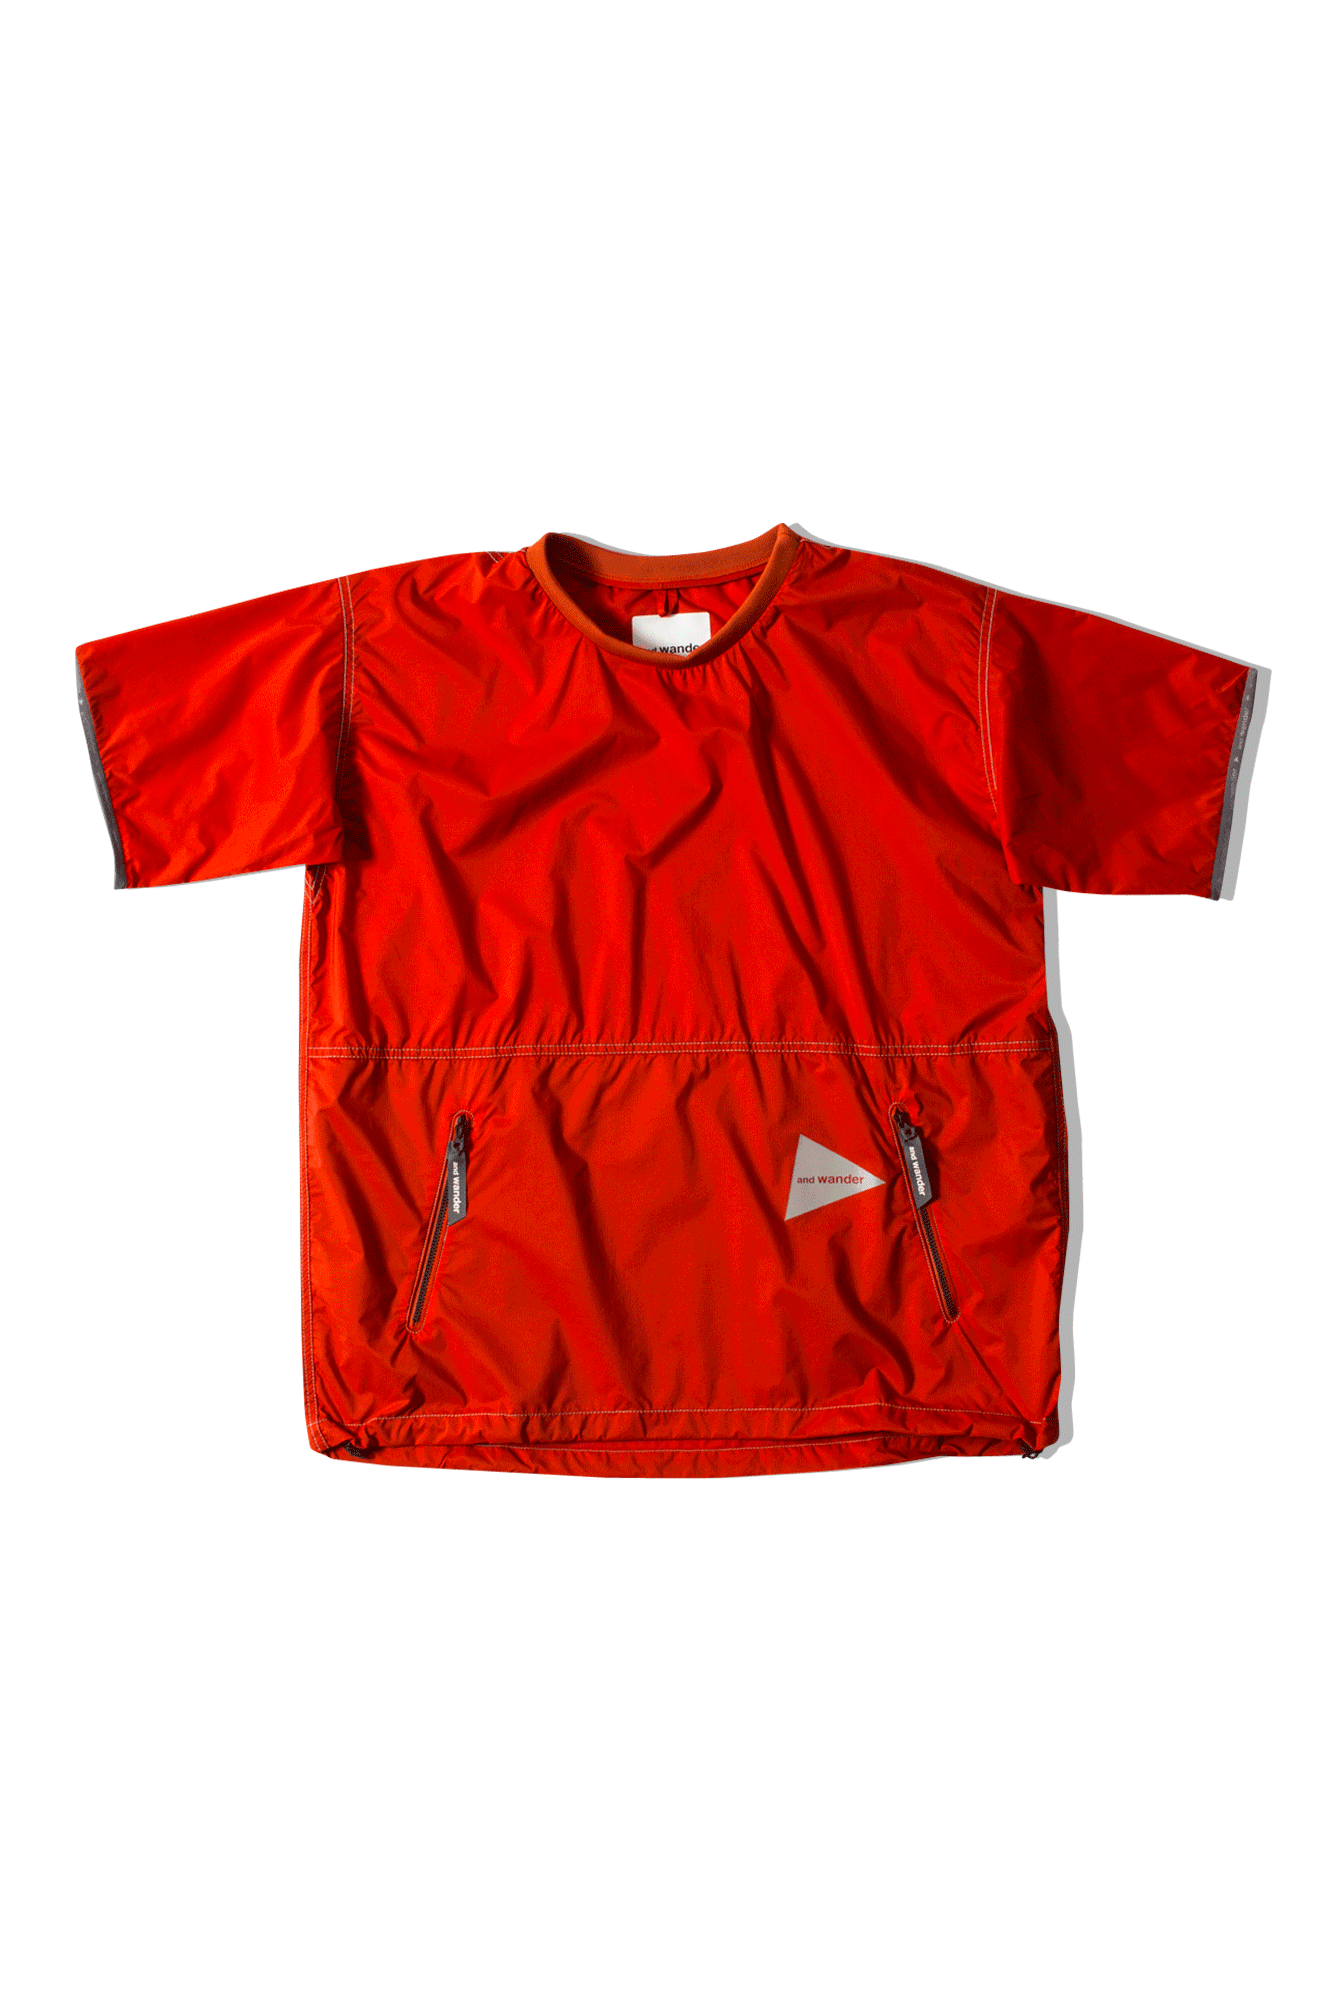 And Wander T-Shirts Pertex Wind Tee Orange AW91-FT626#000#ORA#0 - One Block Down